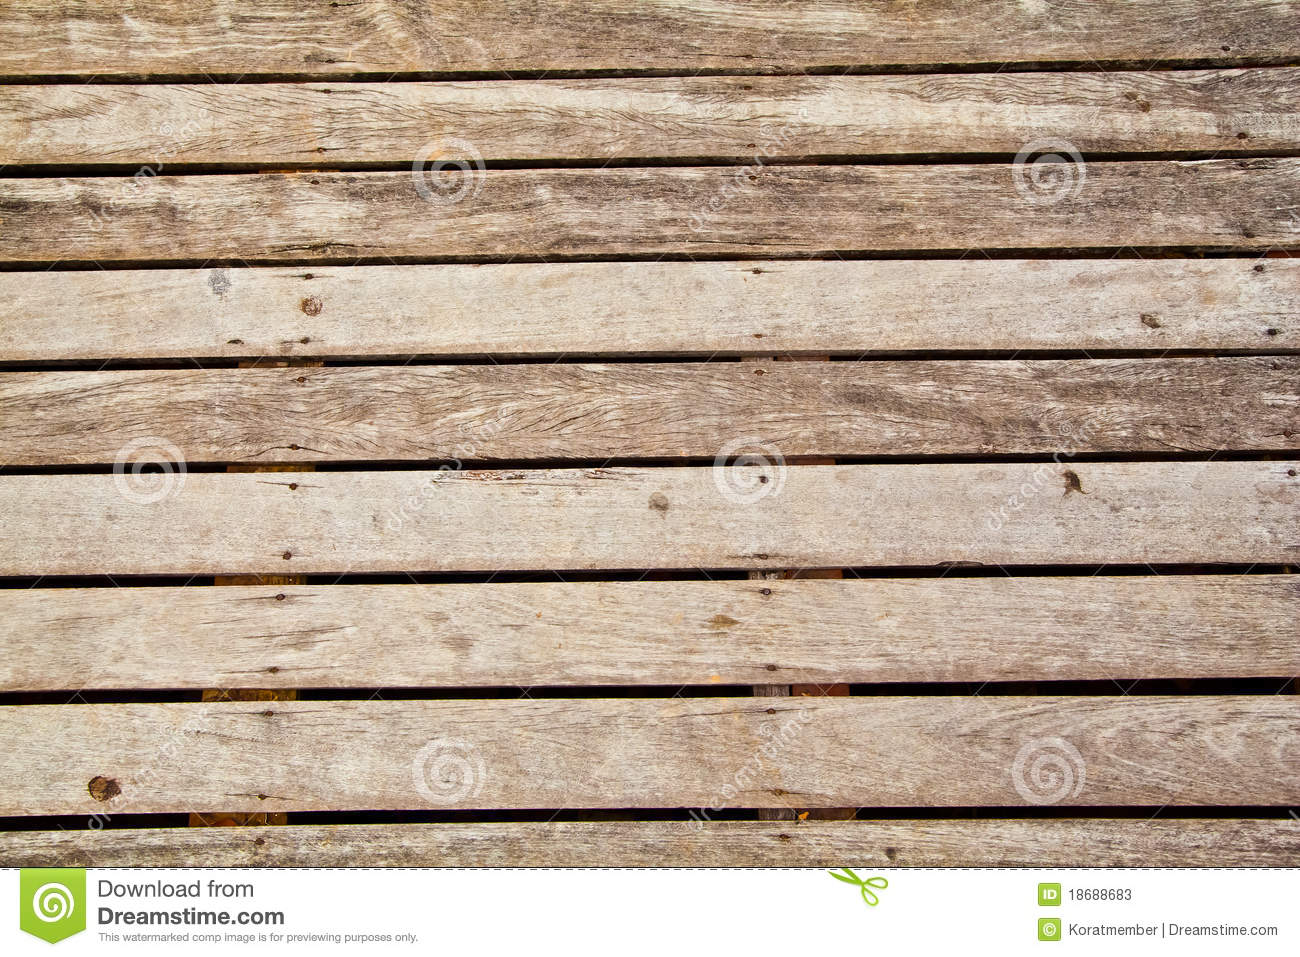 Clipart wood panel.